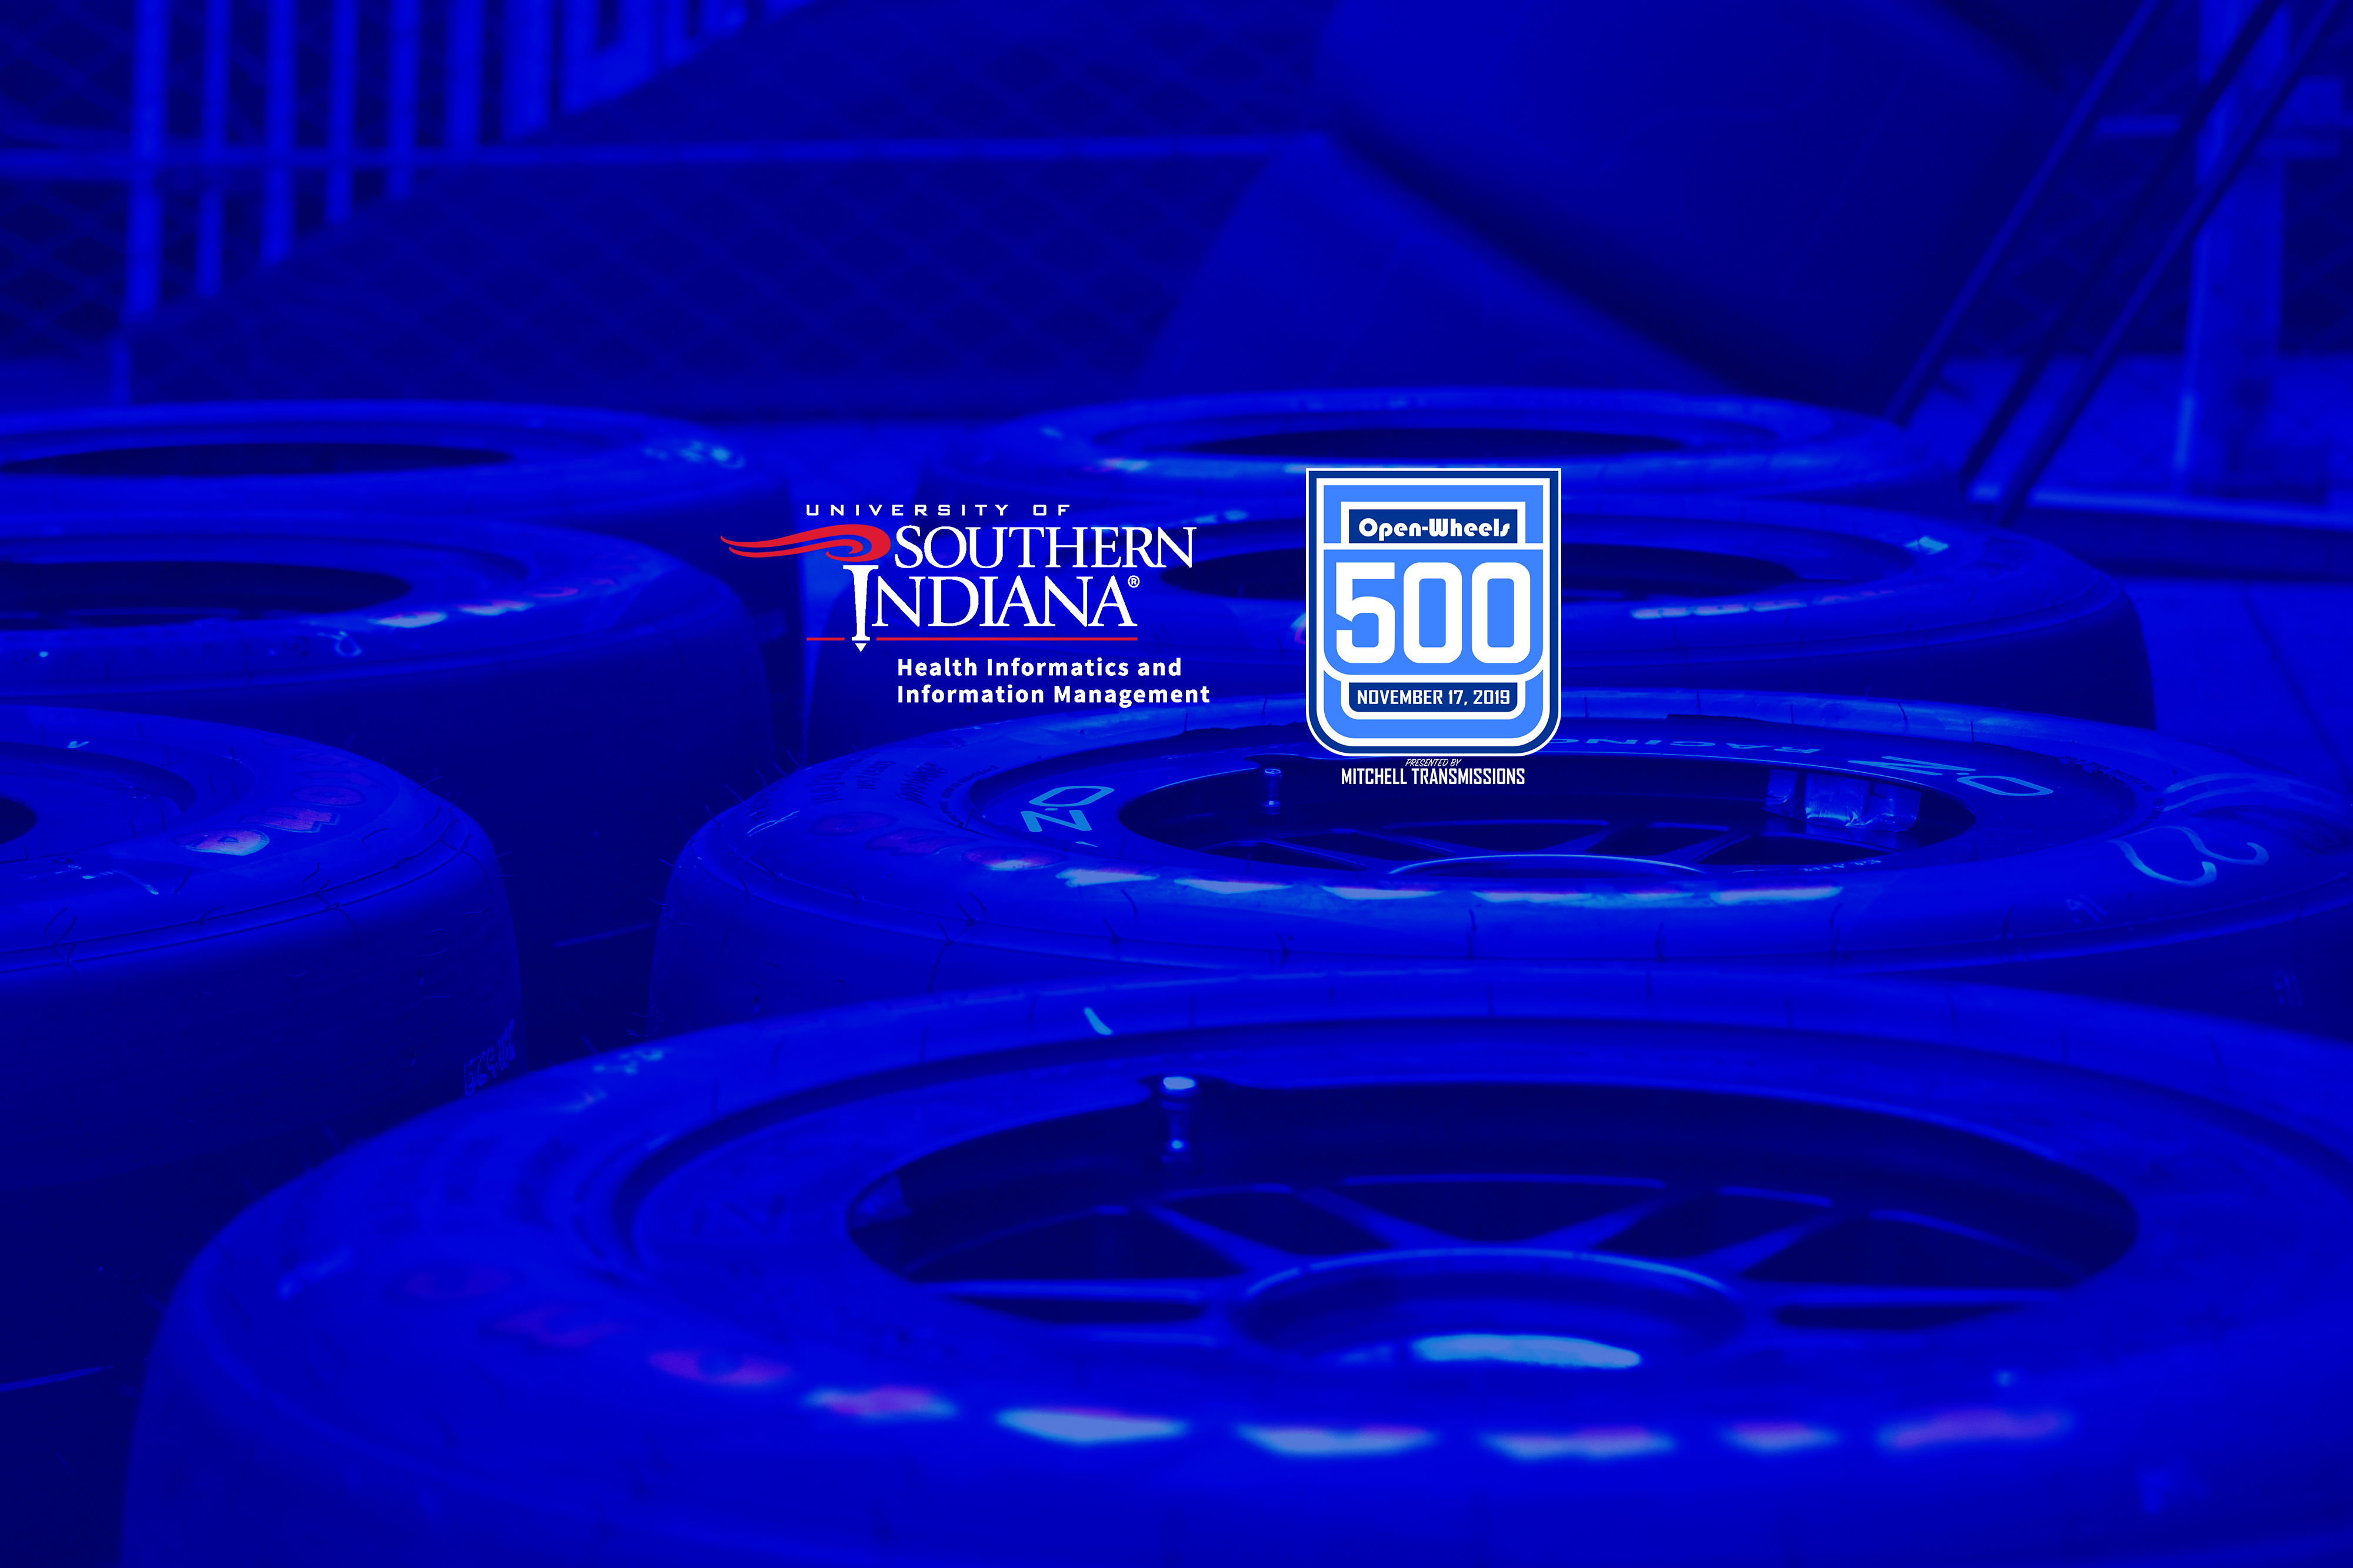 USI Health Informatics and Information Management program partners with Open-Wheels 500 Mile Race